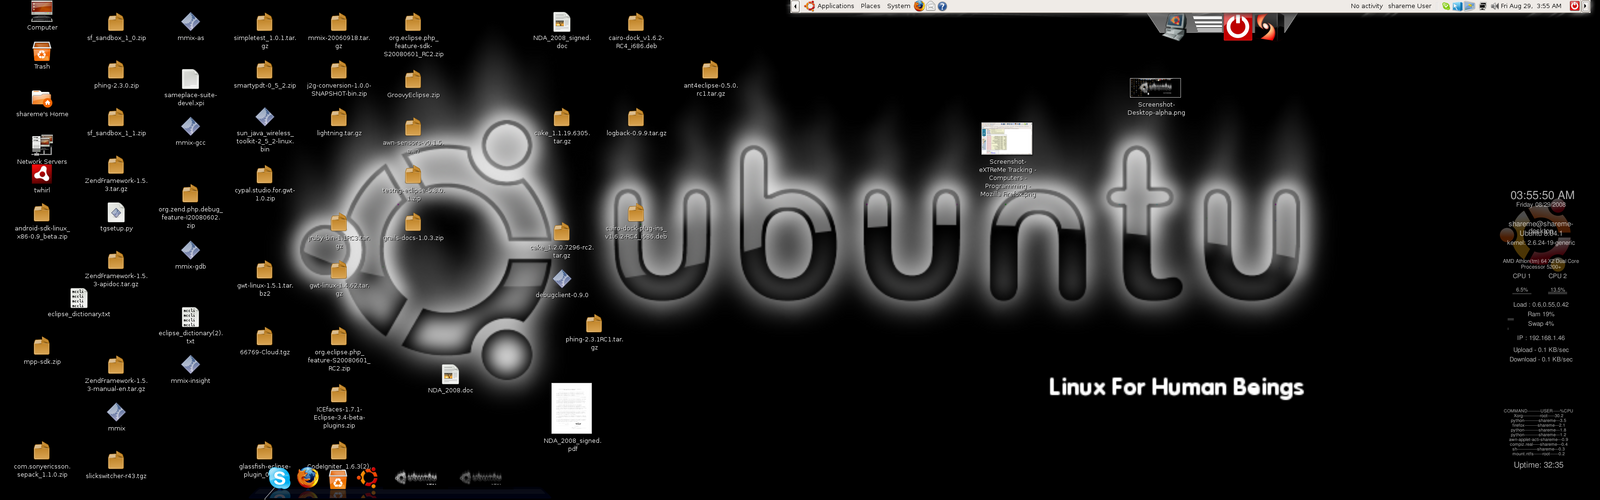 Ubuntu DesktopScreenshot by shareme